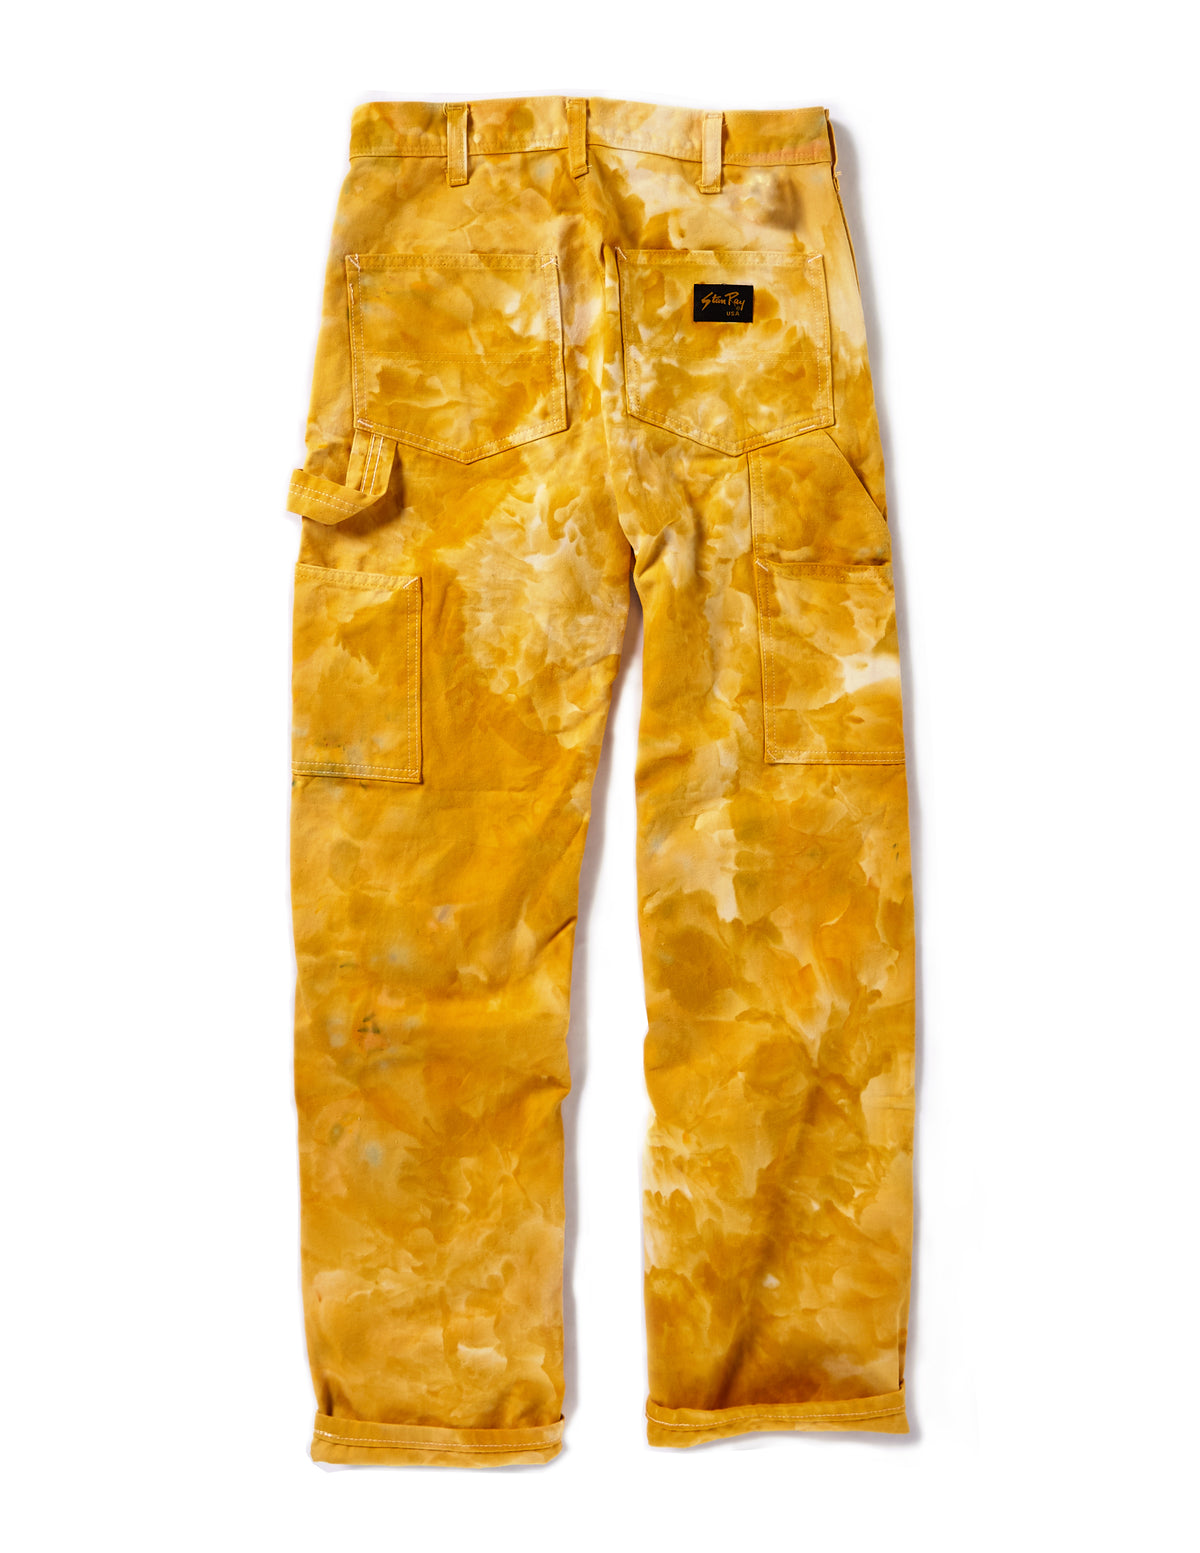 Painter's Pants in Mustard - riverside tool & dye